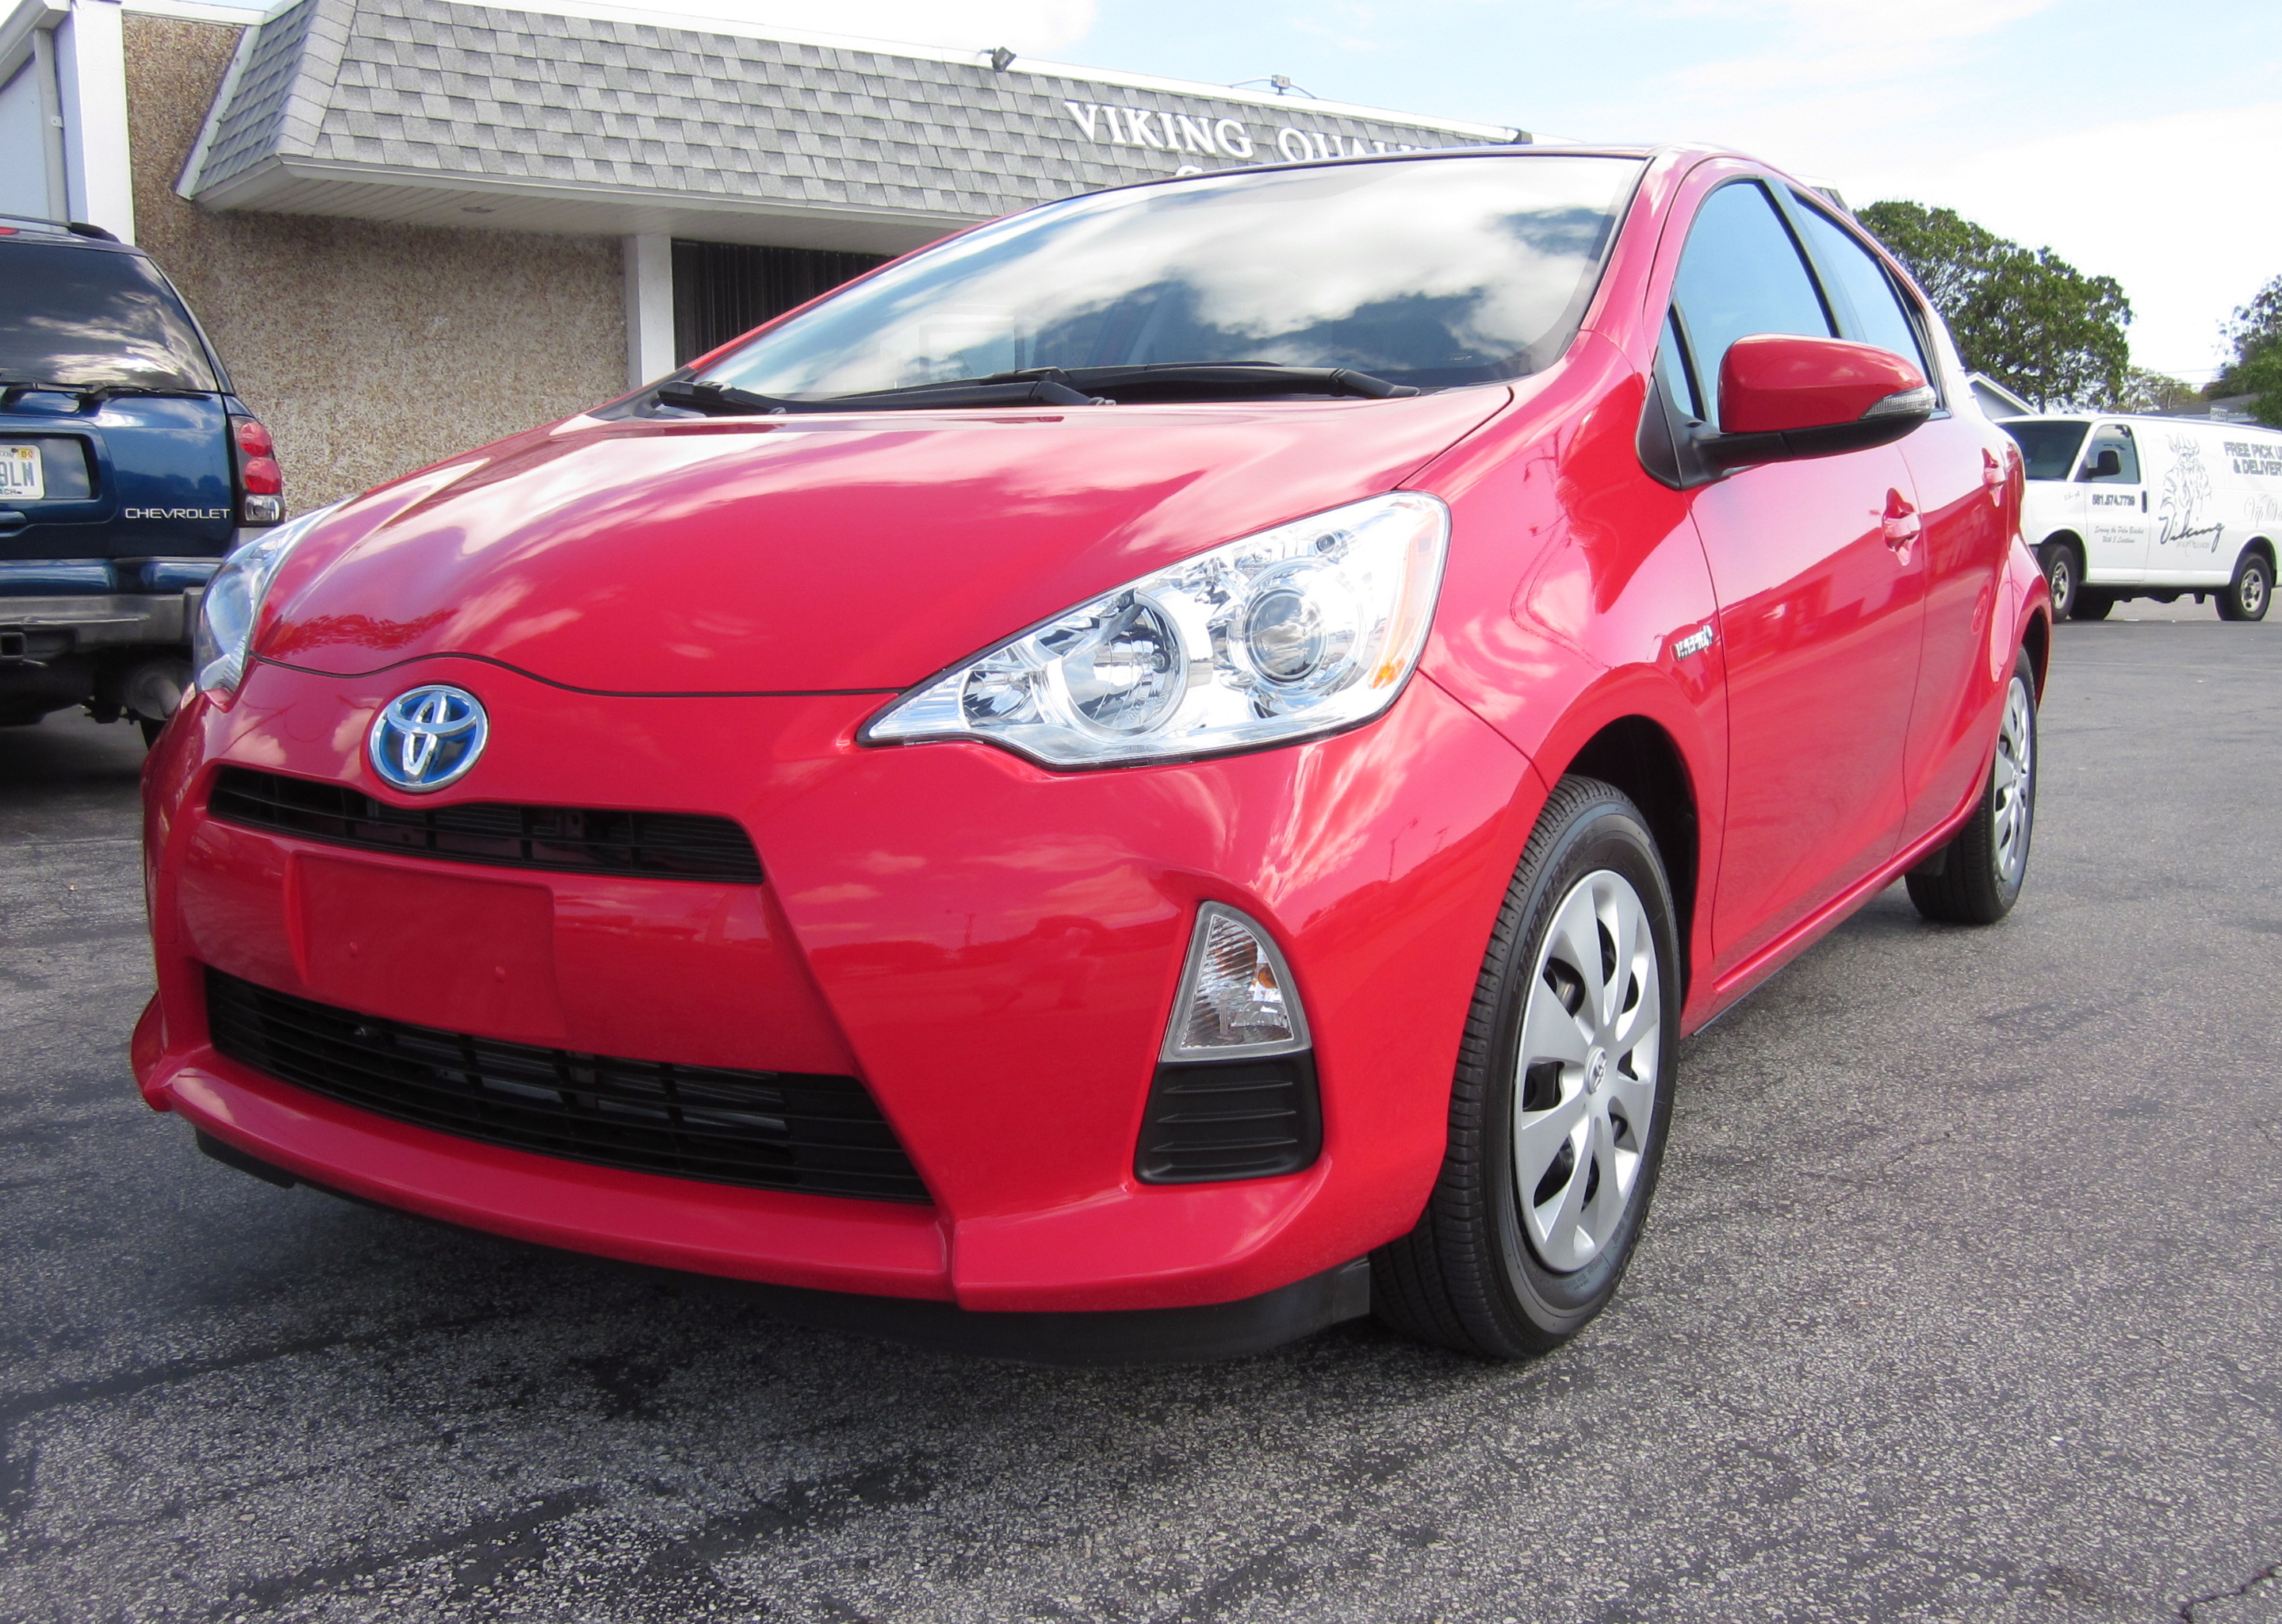 toyota prius distribution channel For that, it's hard to beat the toyota prius, as it meets the basic transportation needs of just about everyone at 44 mpg overall in our tests, only electric cars were more fuel efficient left channel plays static.